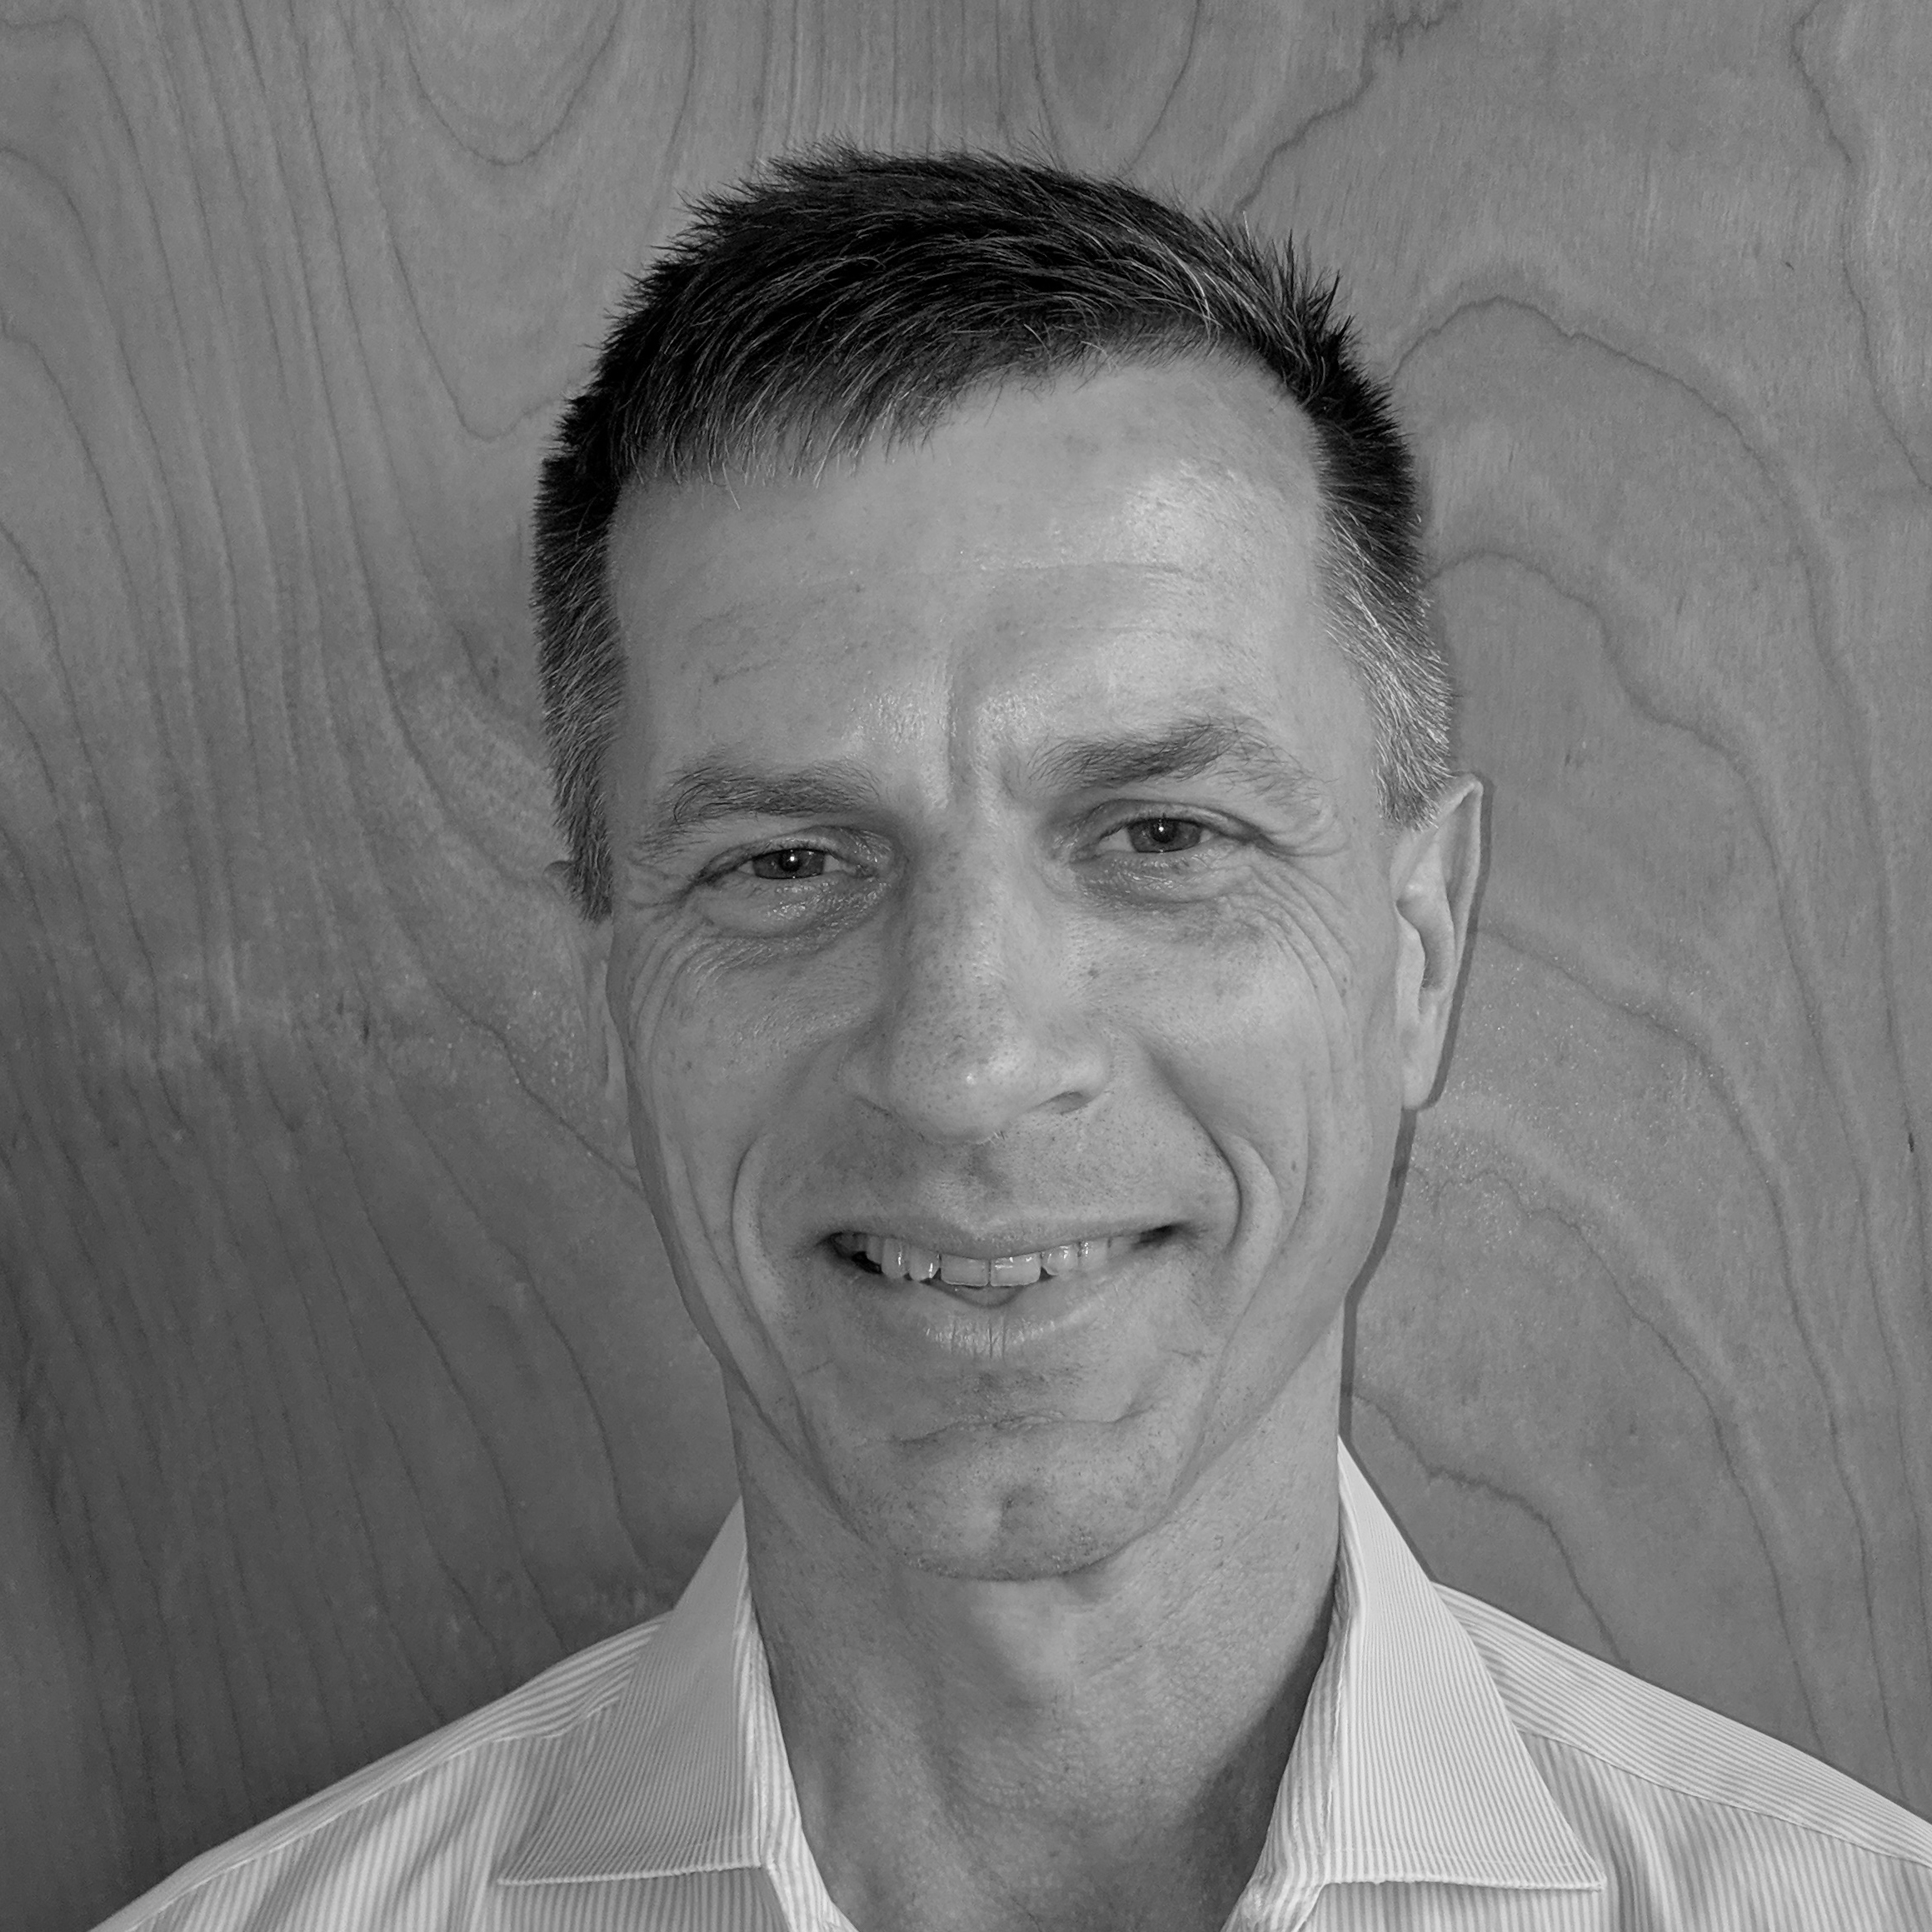 A profile image of Marc Binder.